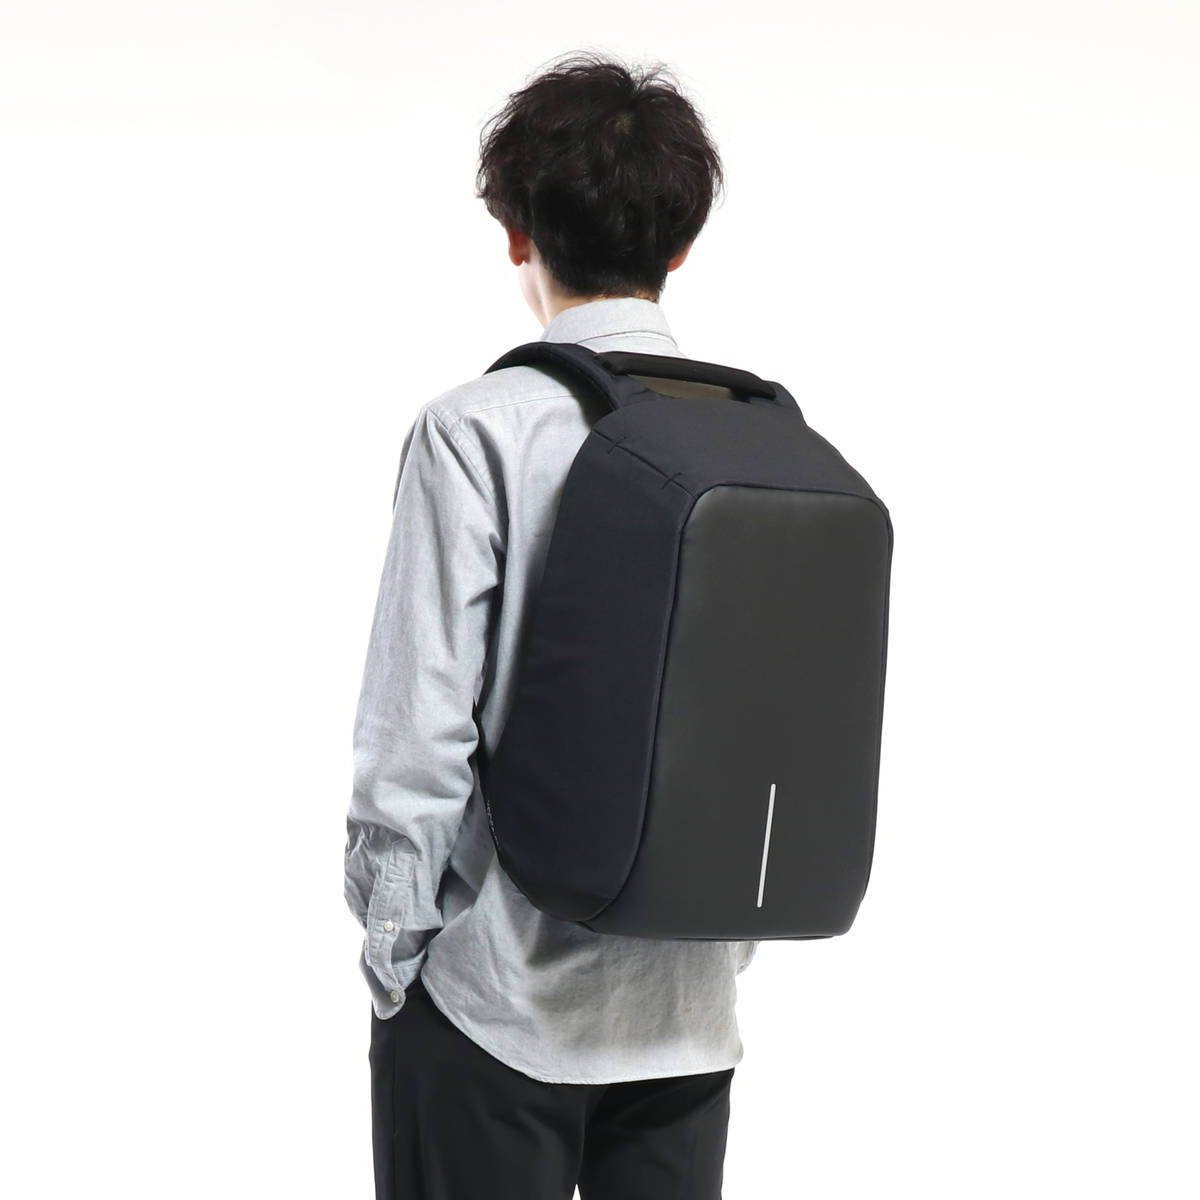 2096b12af70 ... XD DESIGN Bobby XL Backpack B4 crime prevention men's ladies P705-562  ...